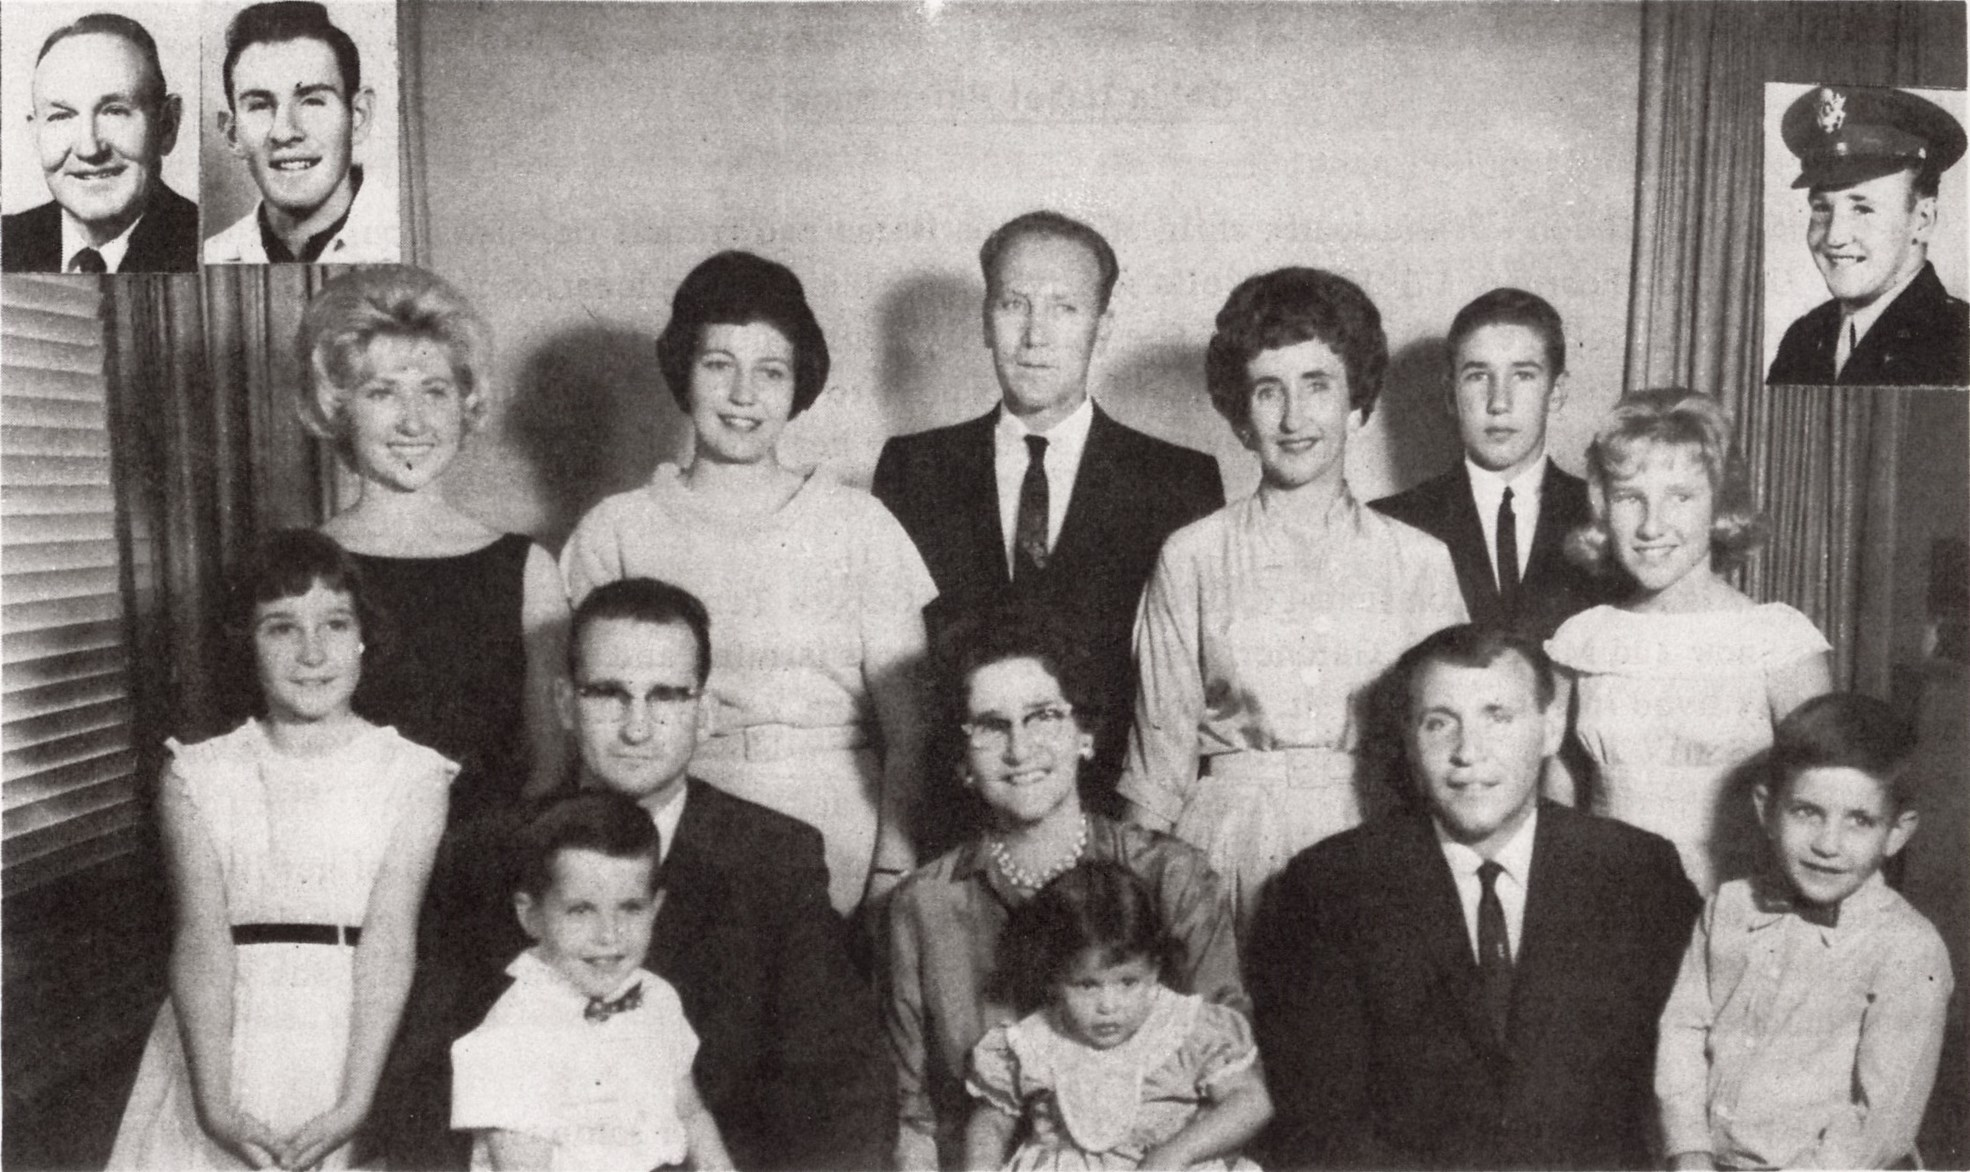 The Lee & Elsie Hafen Family